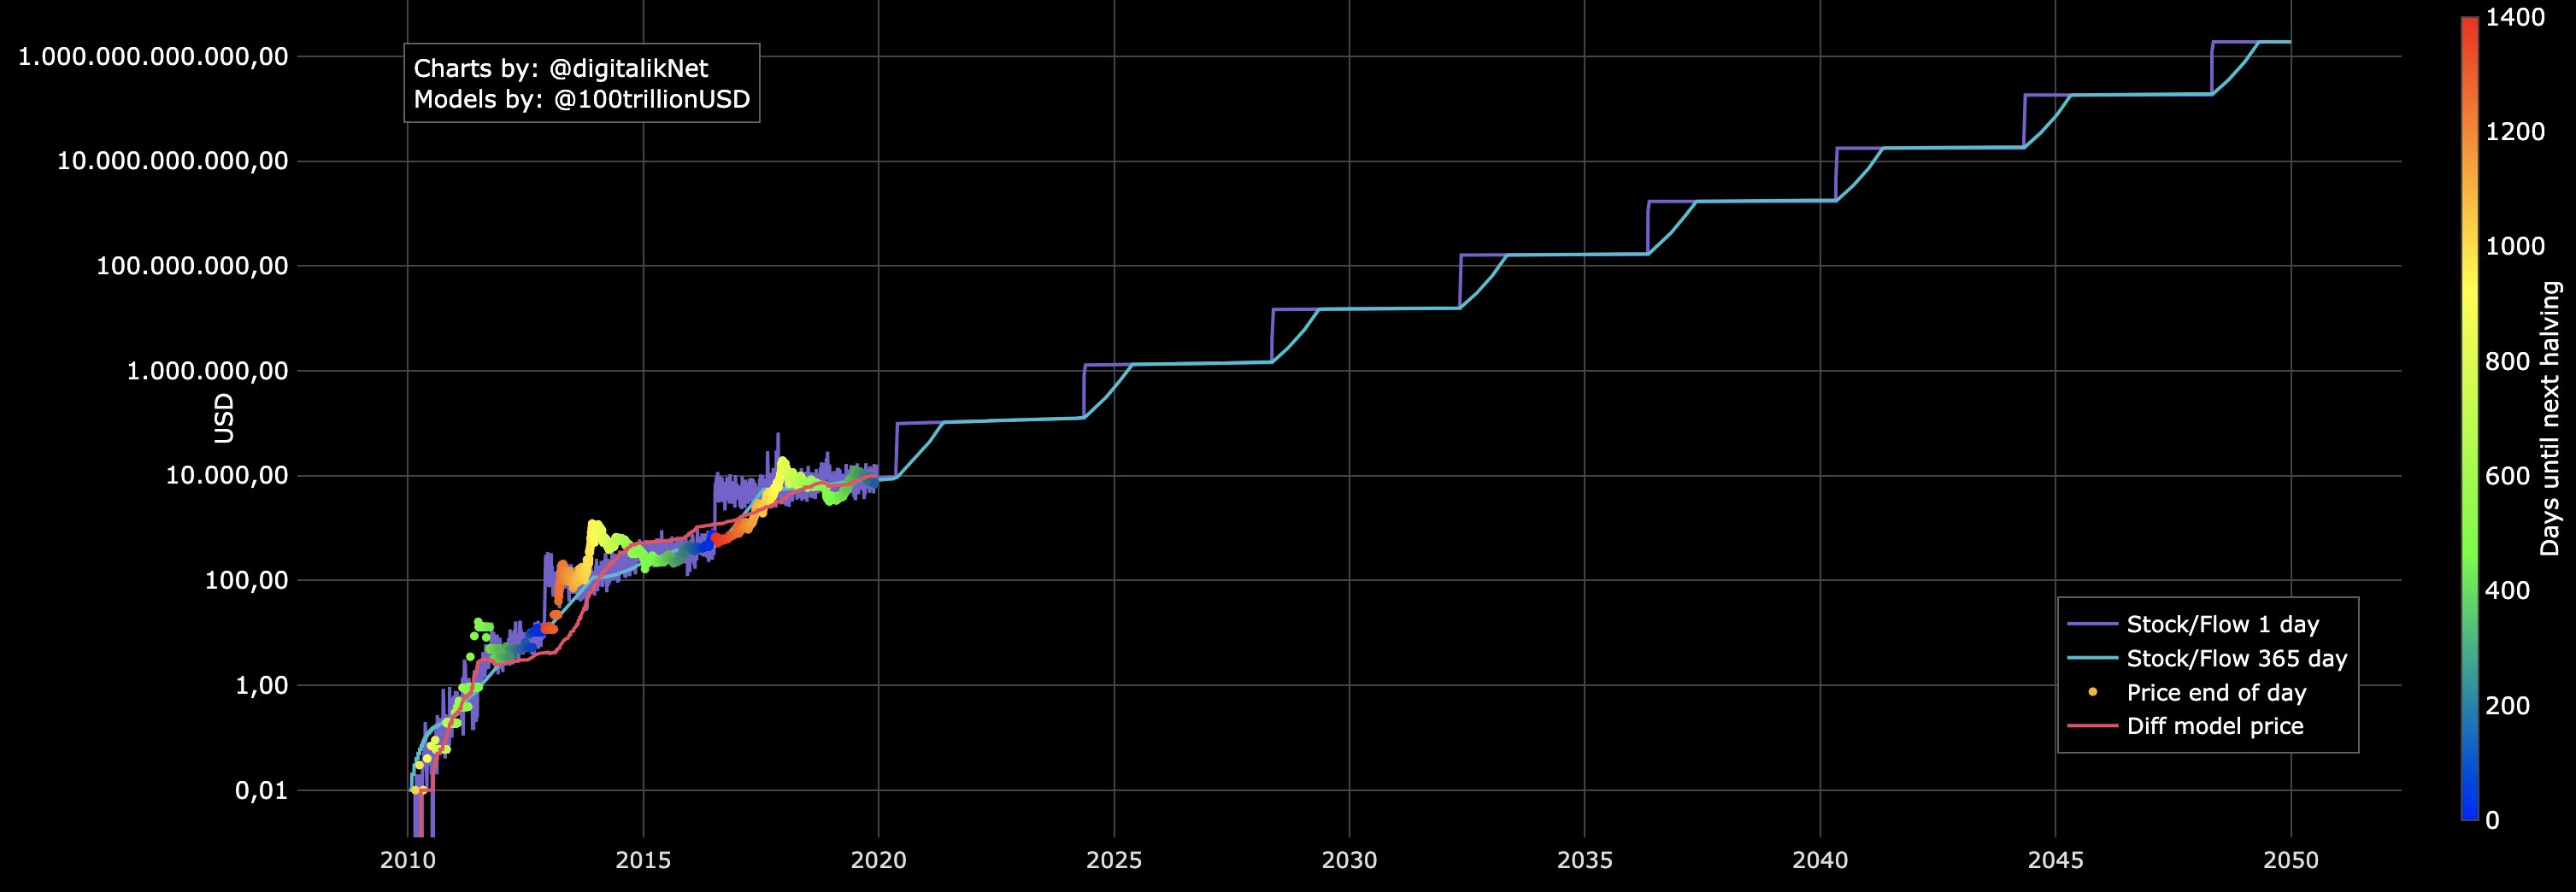 Bitcoin's stock to flow price prediction in 2050